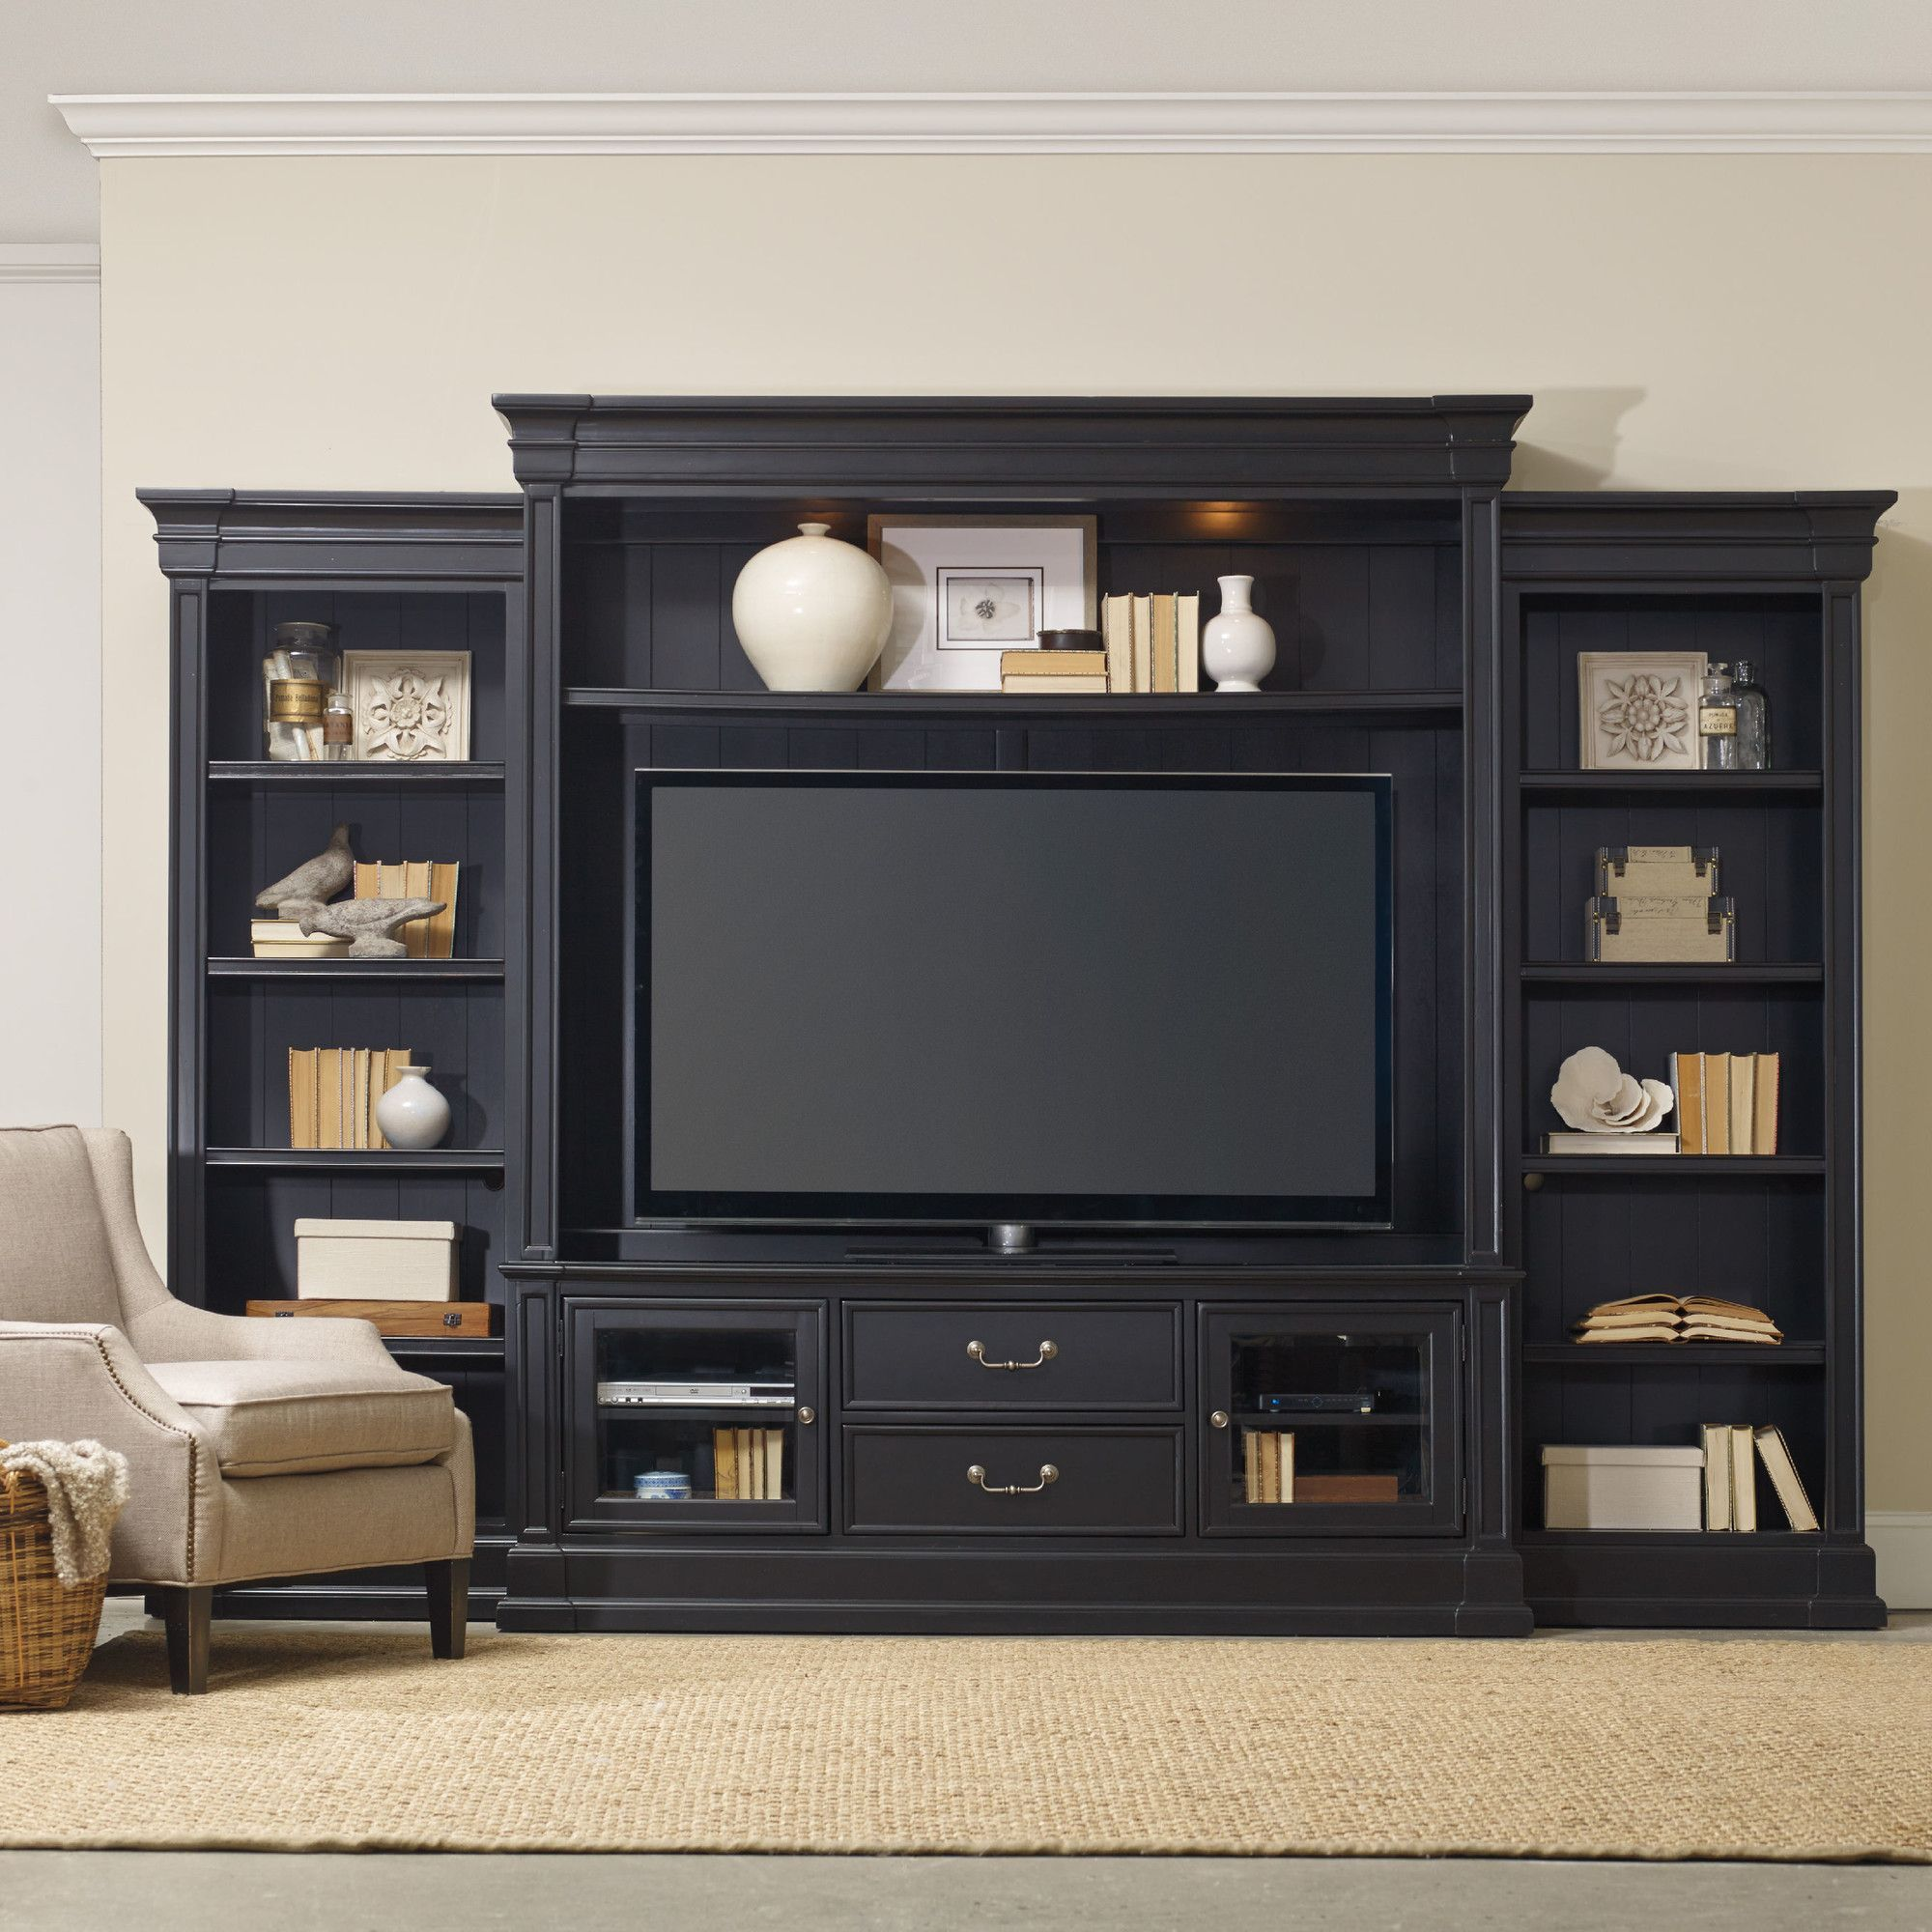 Clermont Tv Stand For Tvs Up To 70 Quot Home Entertainment